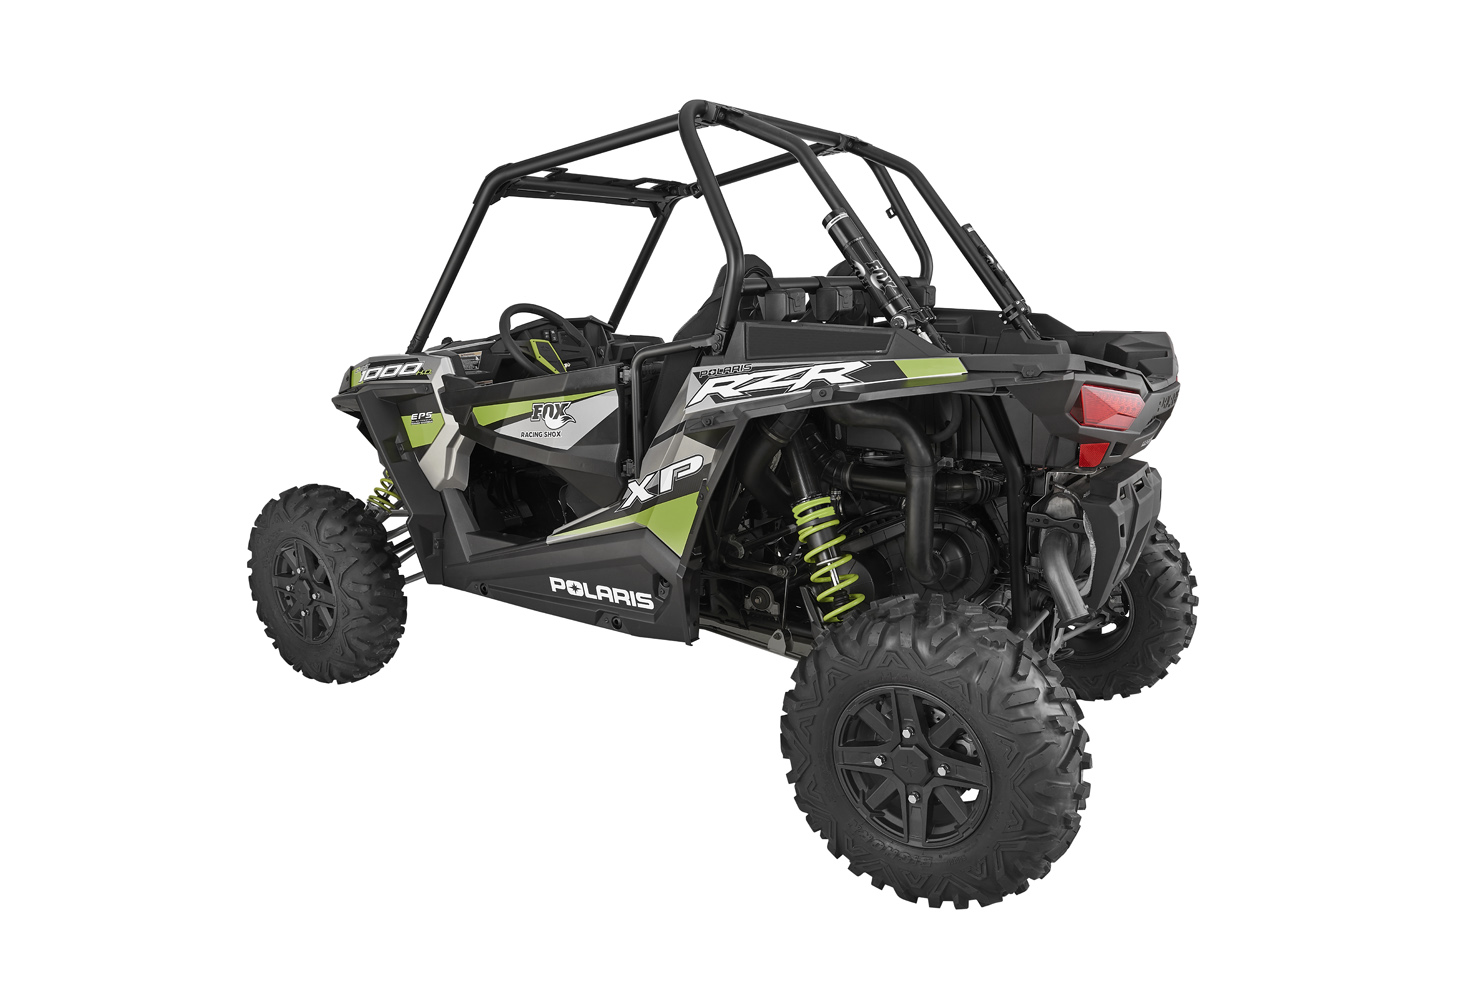 Cw Sxp K Ft Diy together with Red Roof Led X as well Rif C together with Bcorum Albums Papas Rzr Picture Side moreover Rzr Halos Blue. on 2015 polaris rzr models